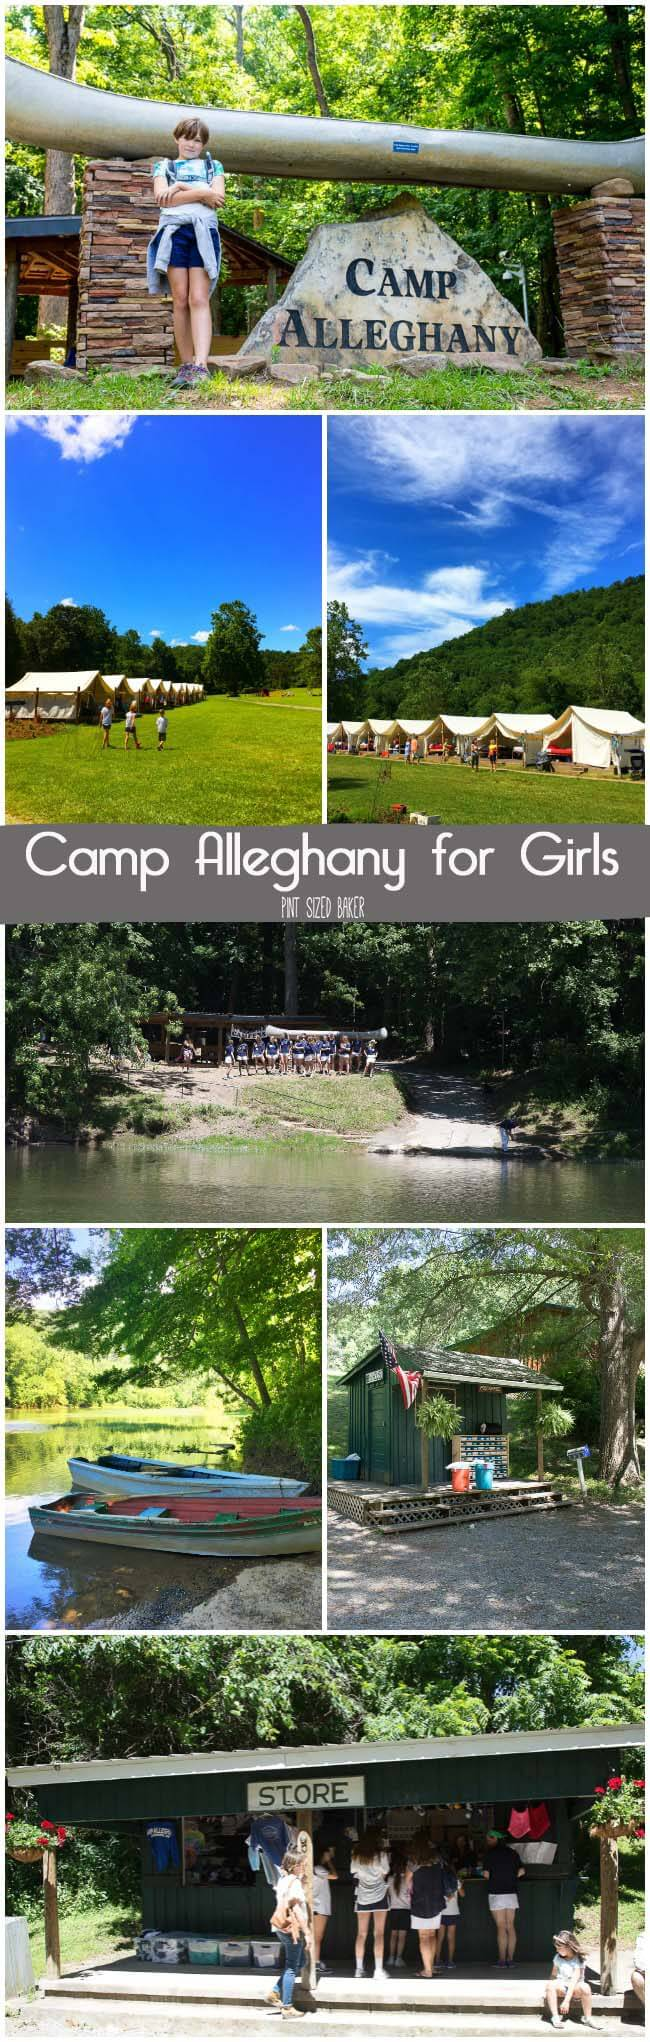 Girls from around the world come to Camp Alleghany to explore the great outdoors. Young ladies ages 8-16 come for 3 week camp and come home full of independence!